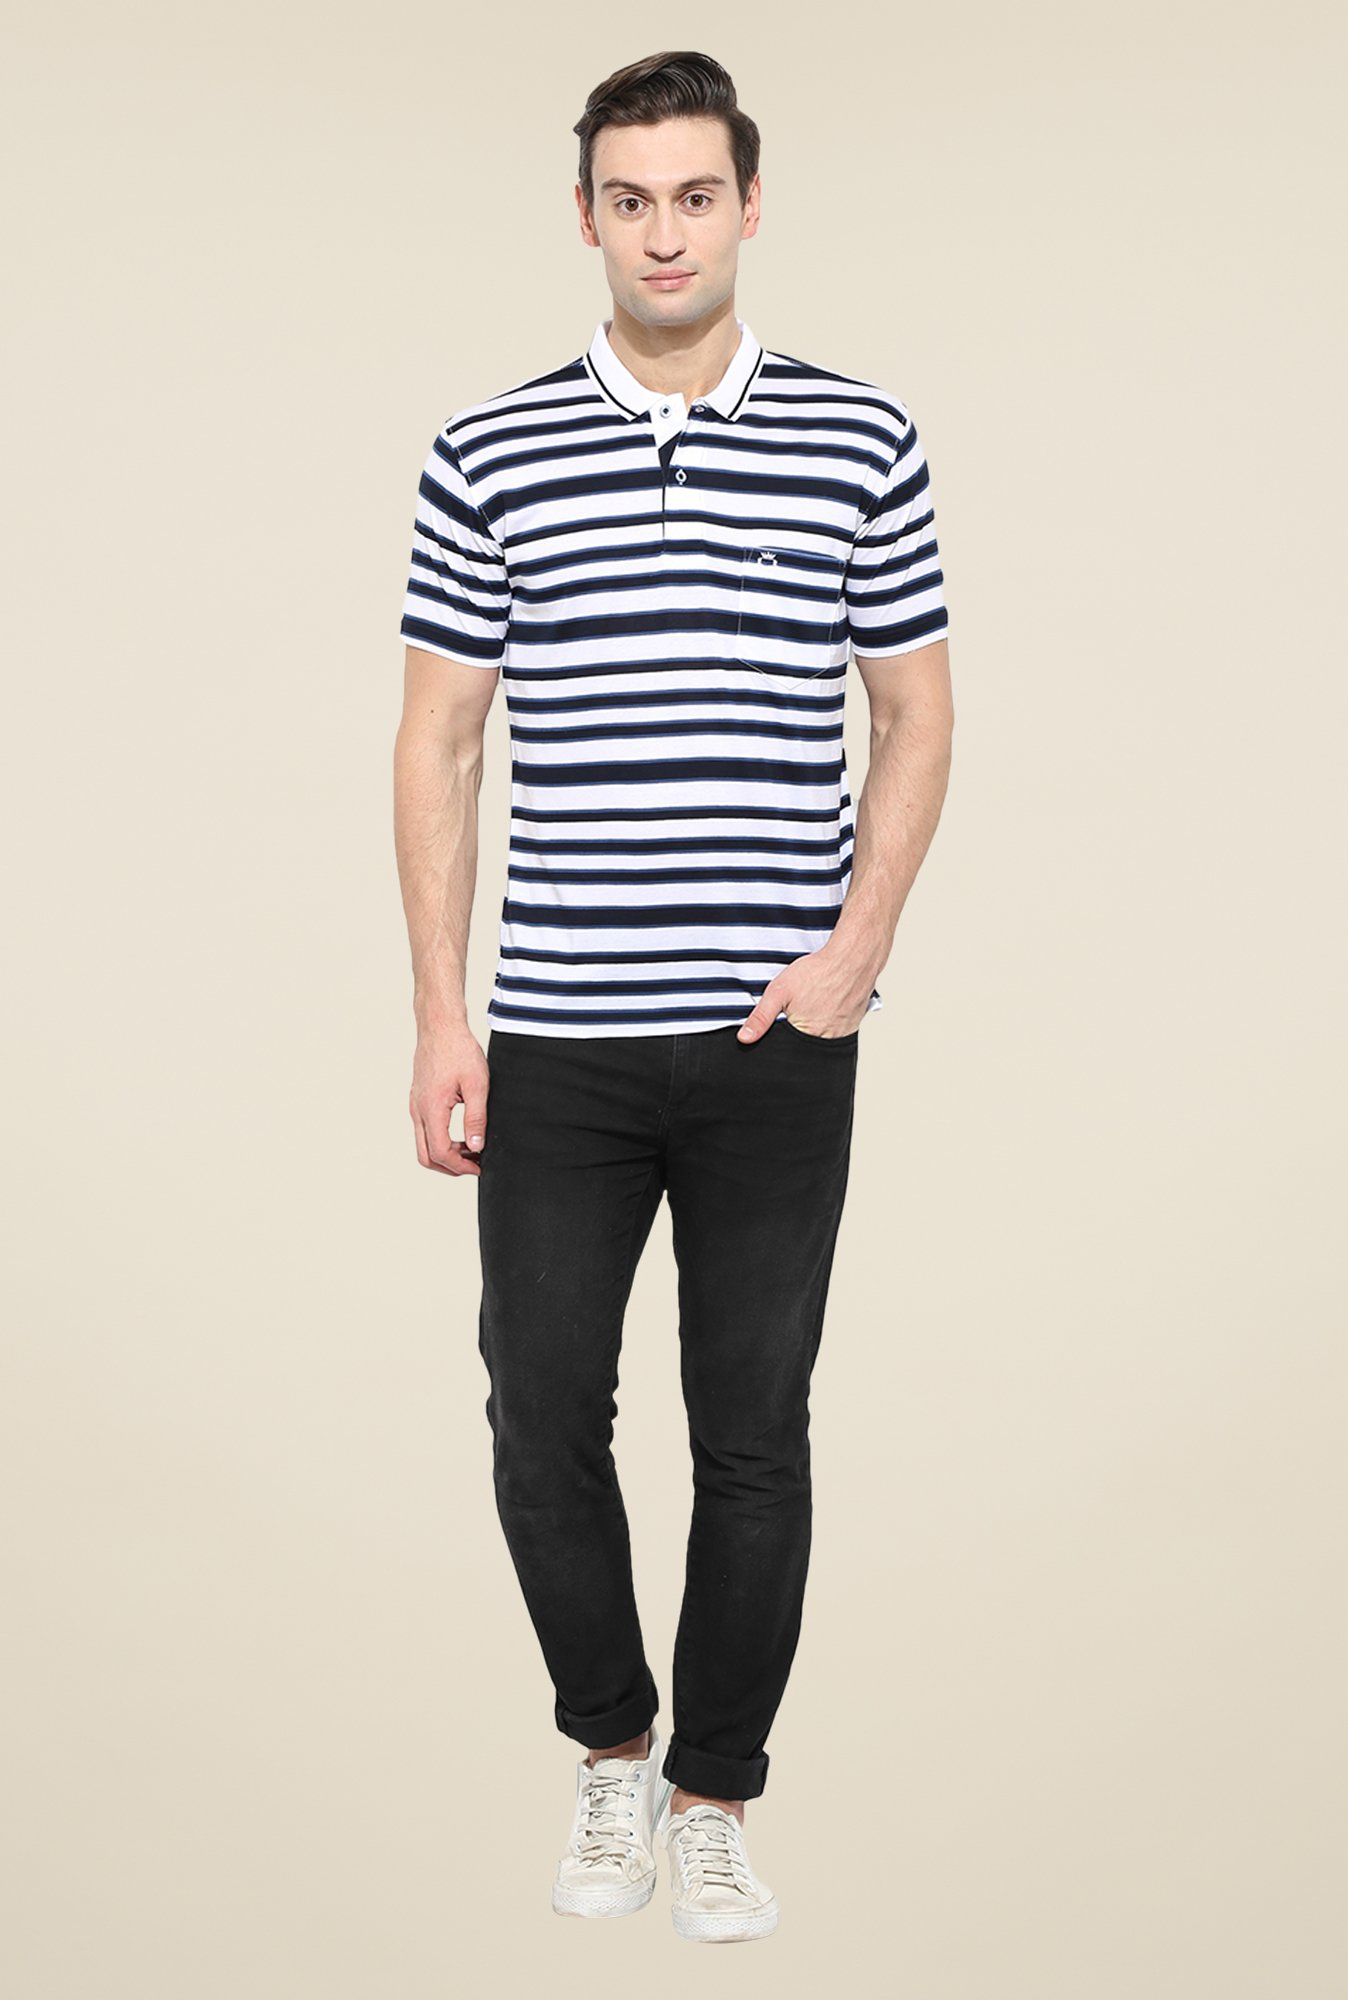 Duke Stardust White & Navy Striped T-shirt